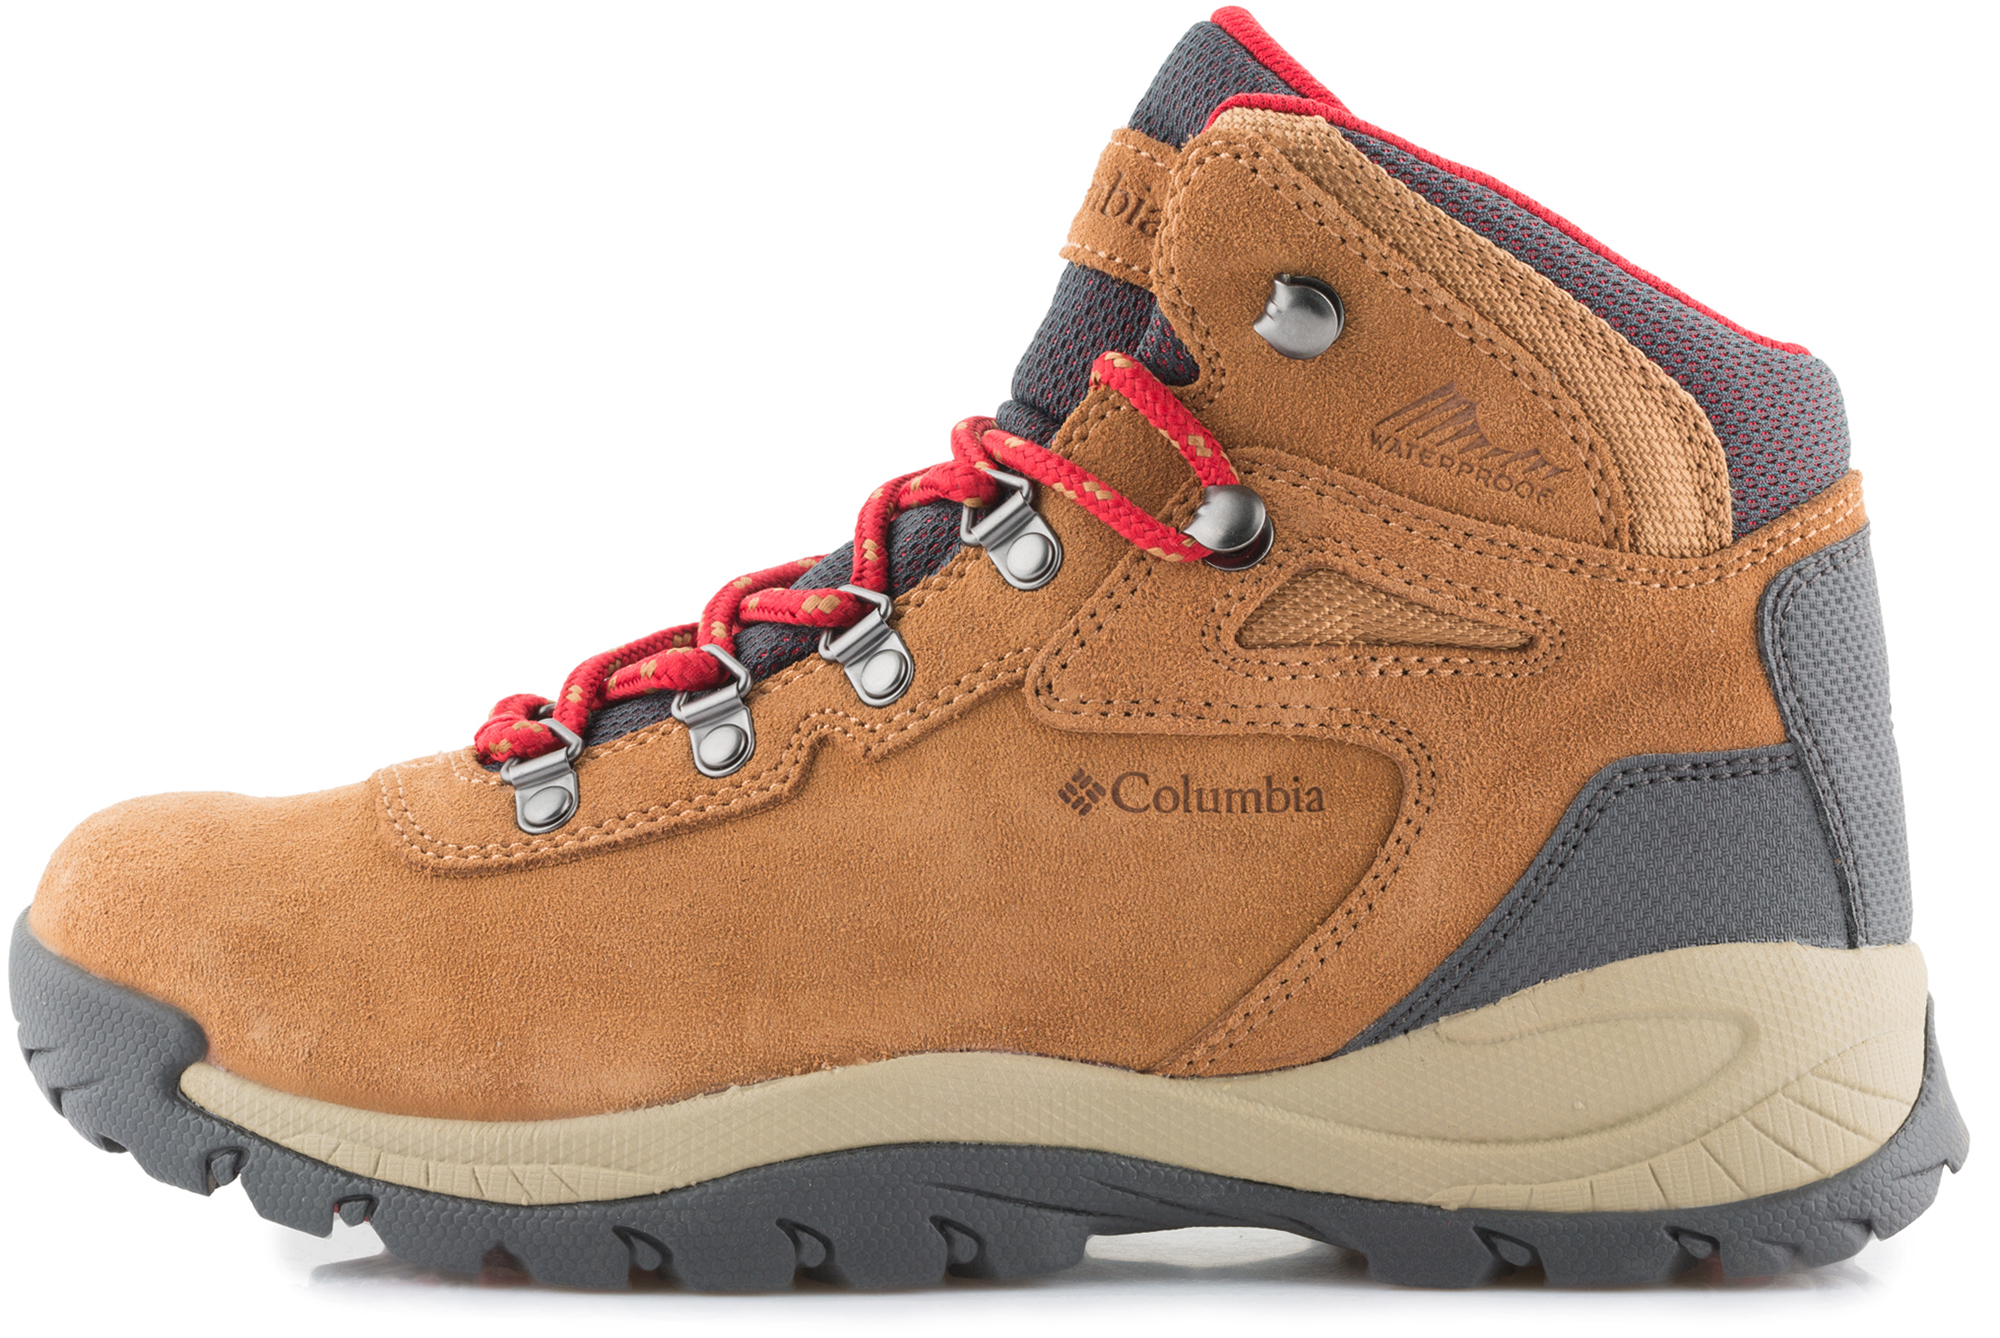 Columbia Ботинки женские Columbia Newton Ridge Plus Waterproof Amped ботинки трекинговые columbia columbia co214ammeg99